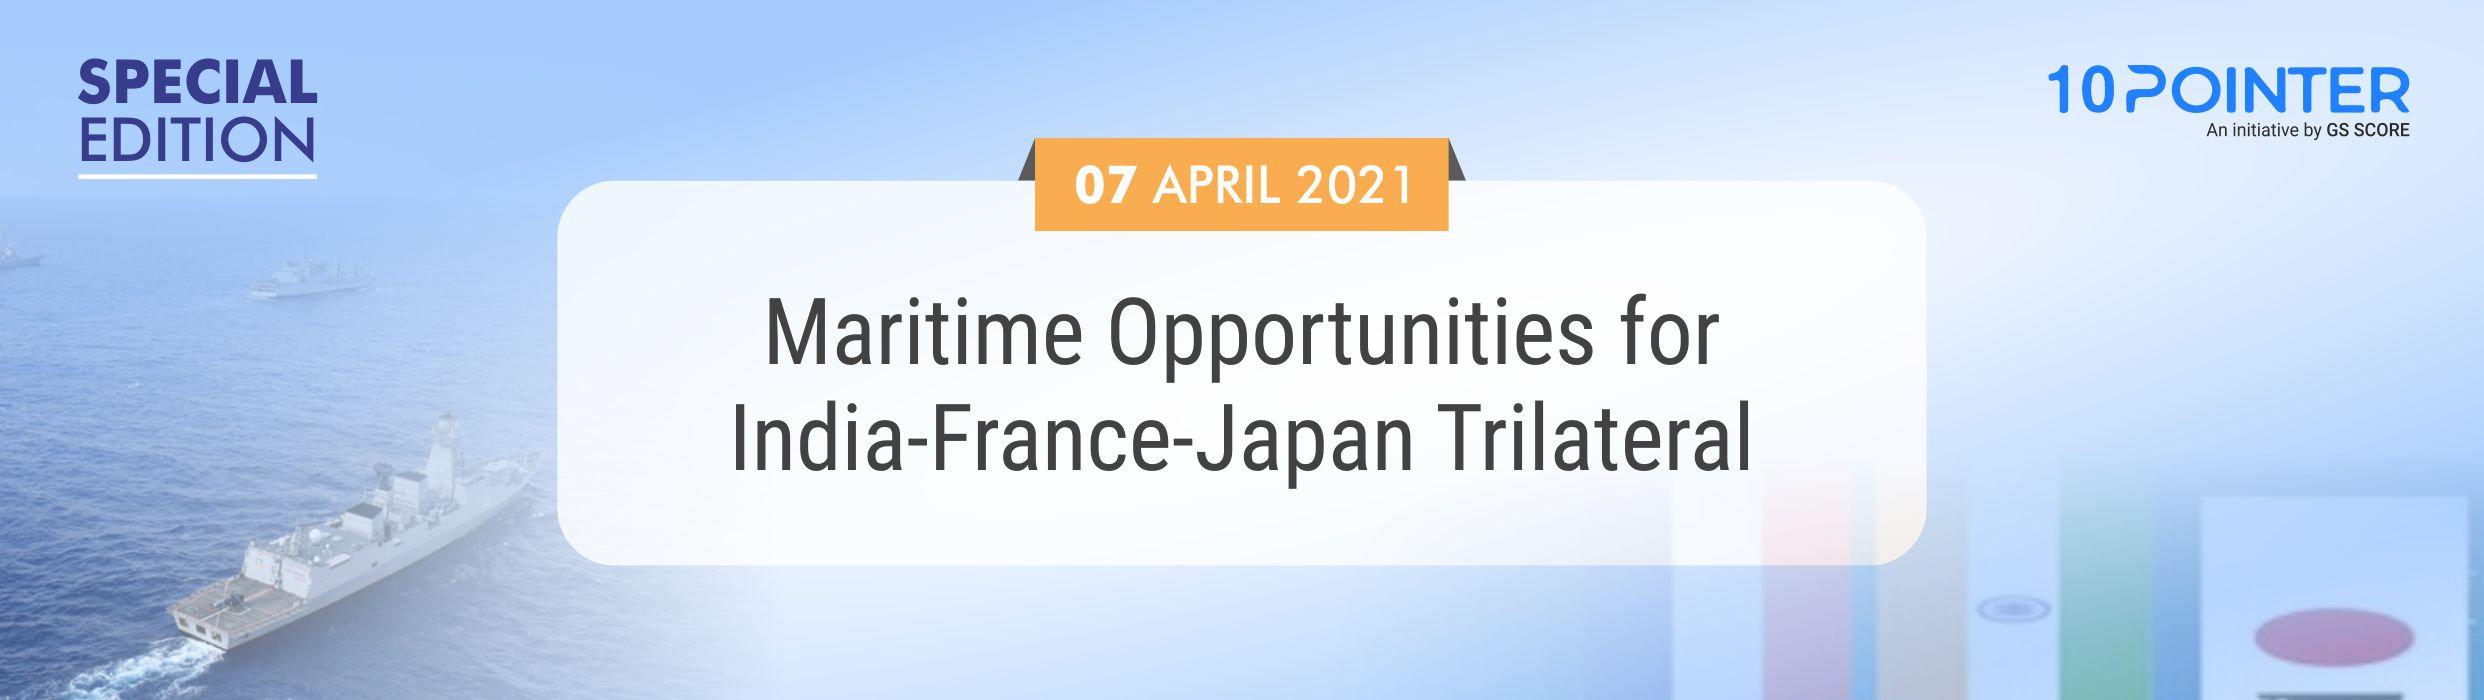 Maritime Opportunities for India-France-Japan Trilateral